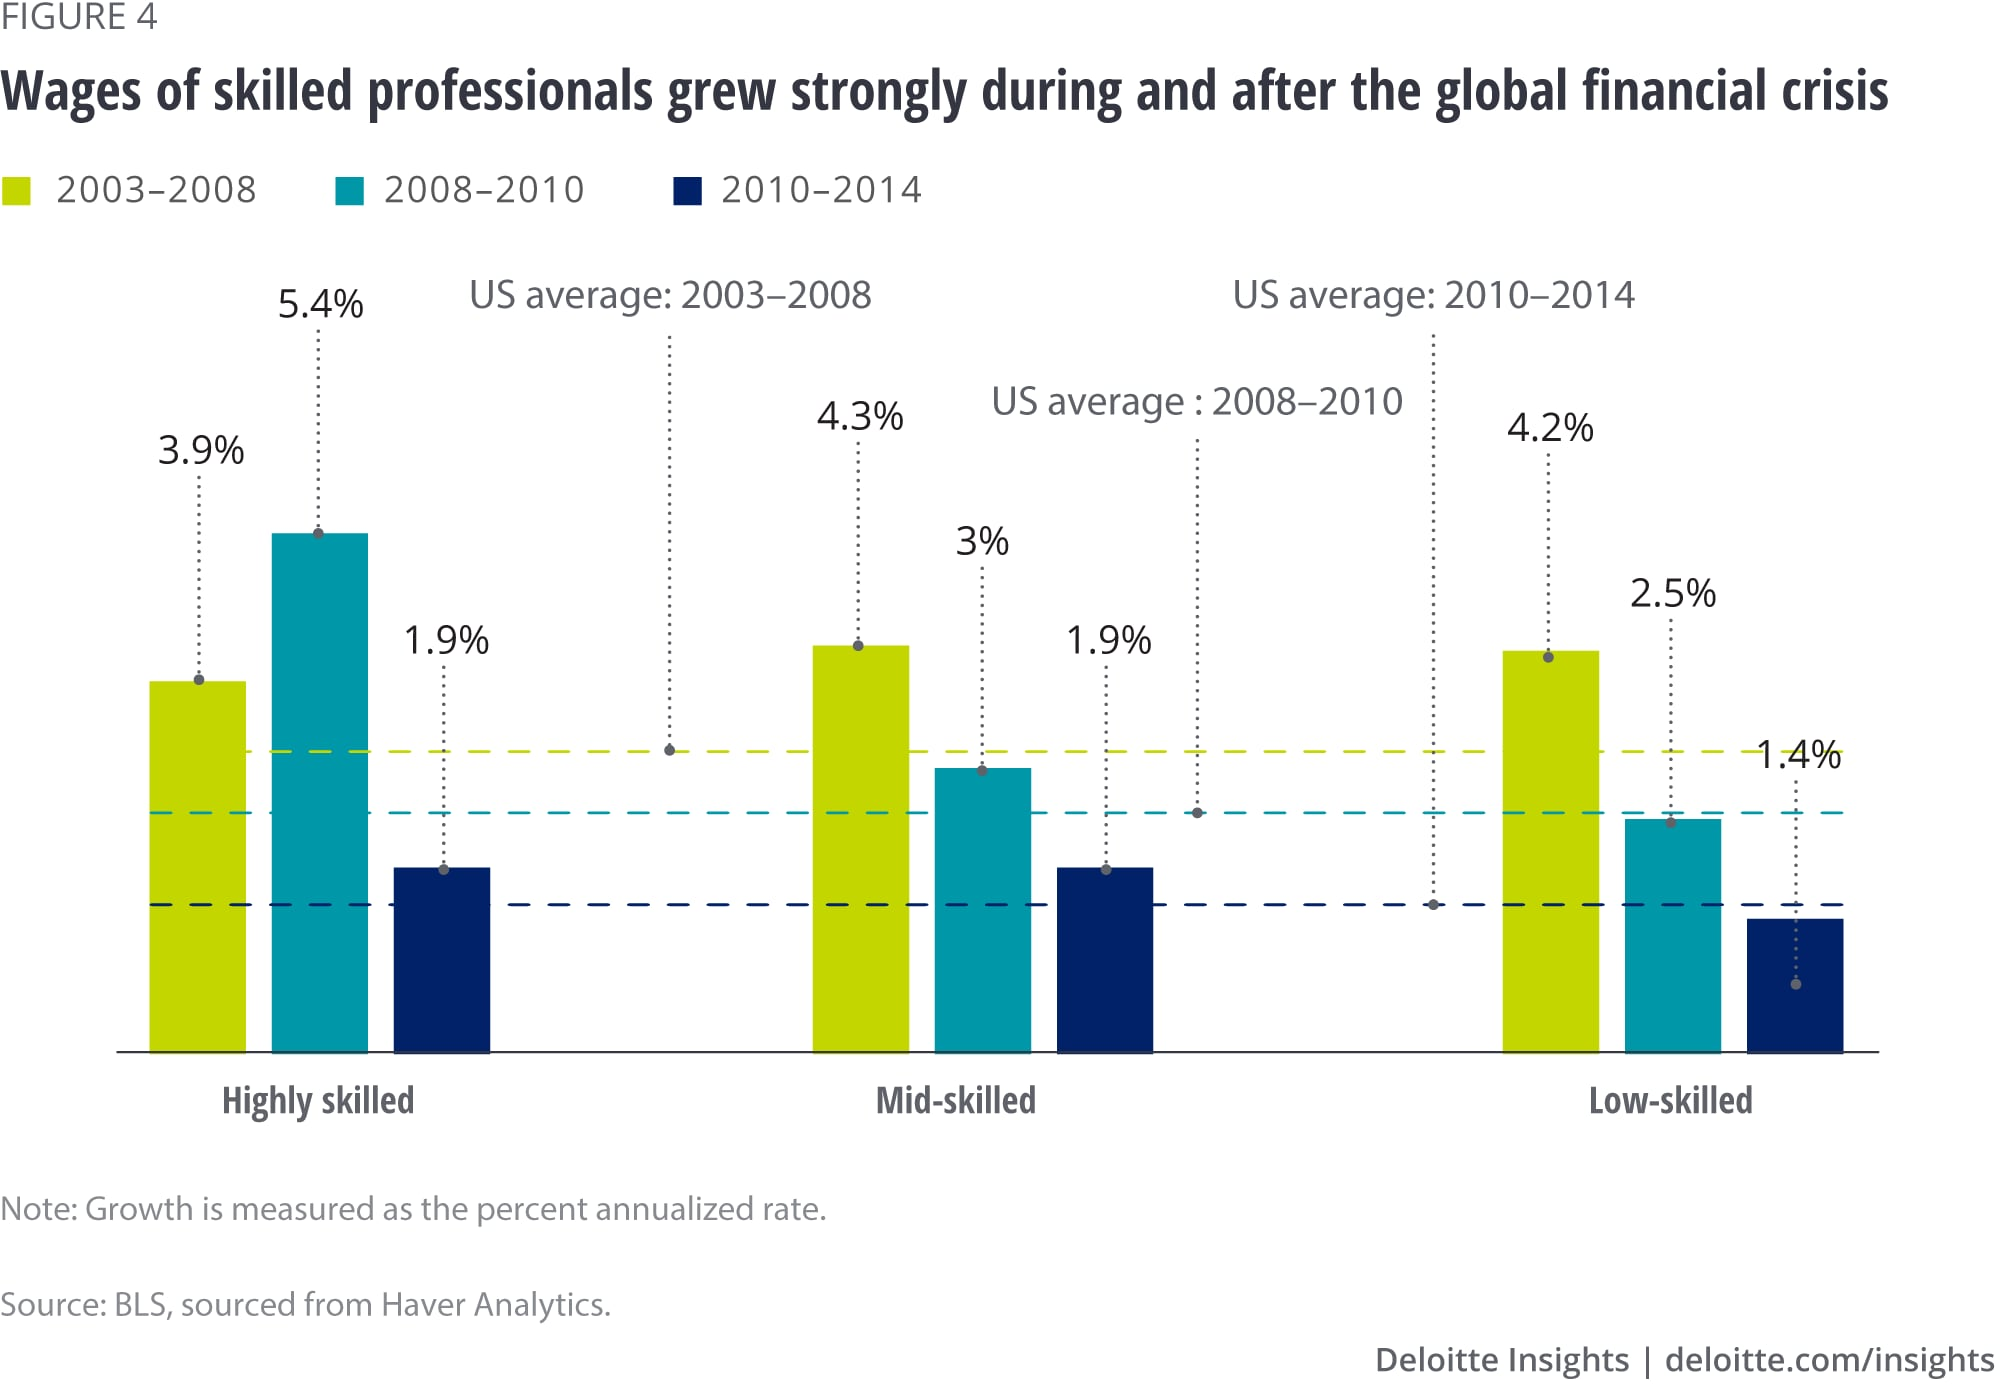 Wages of skilled professionals grew strongly during and after the global financial crisis